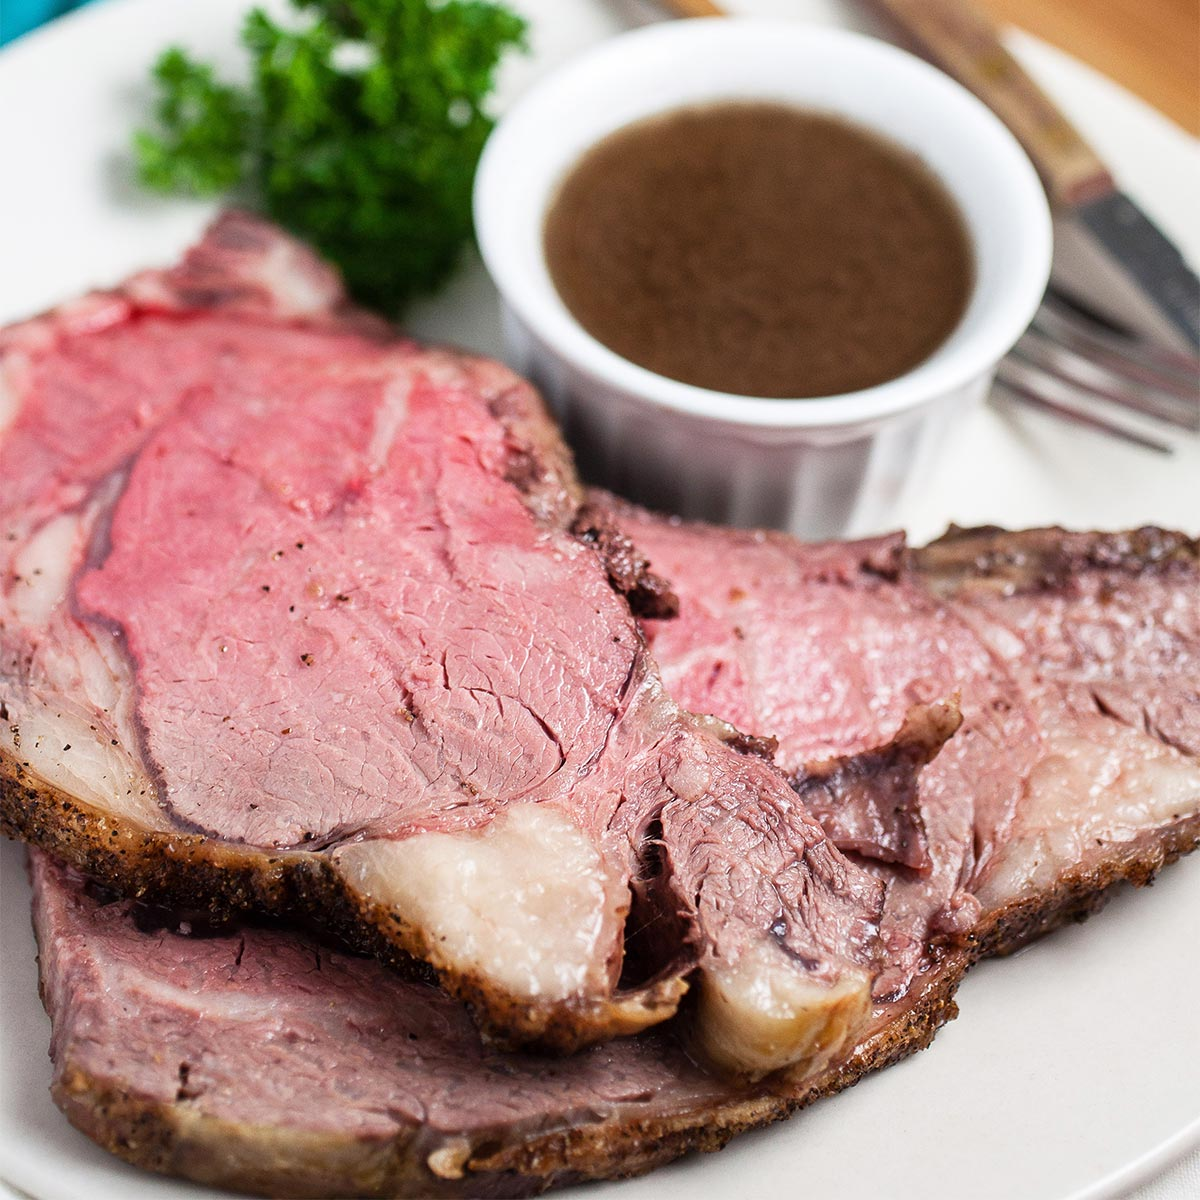 au jus sauce in a bowl next to two slices of prime rib